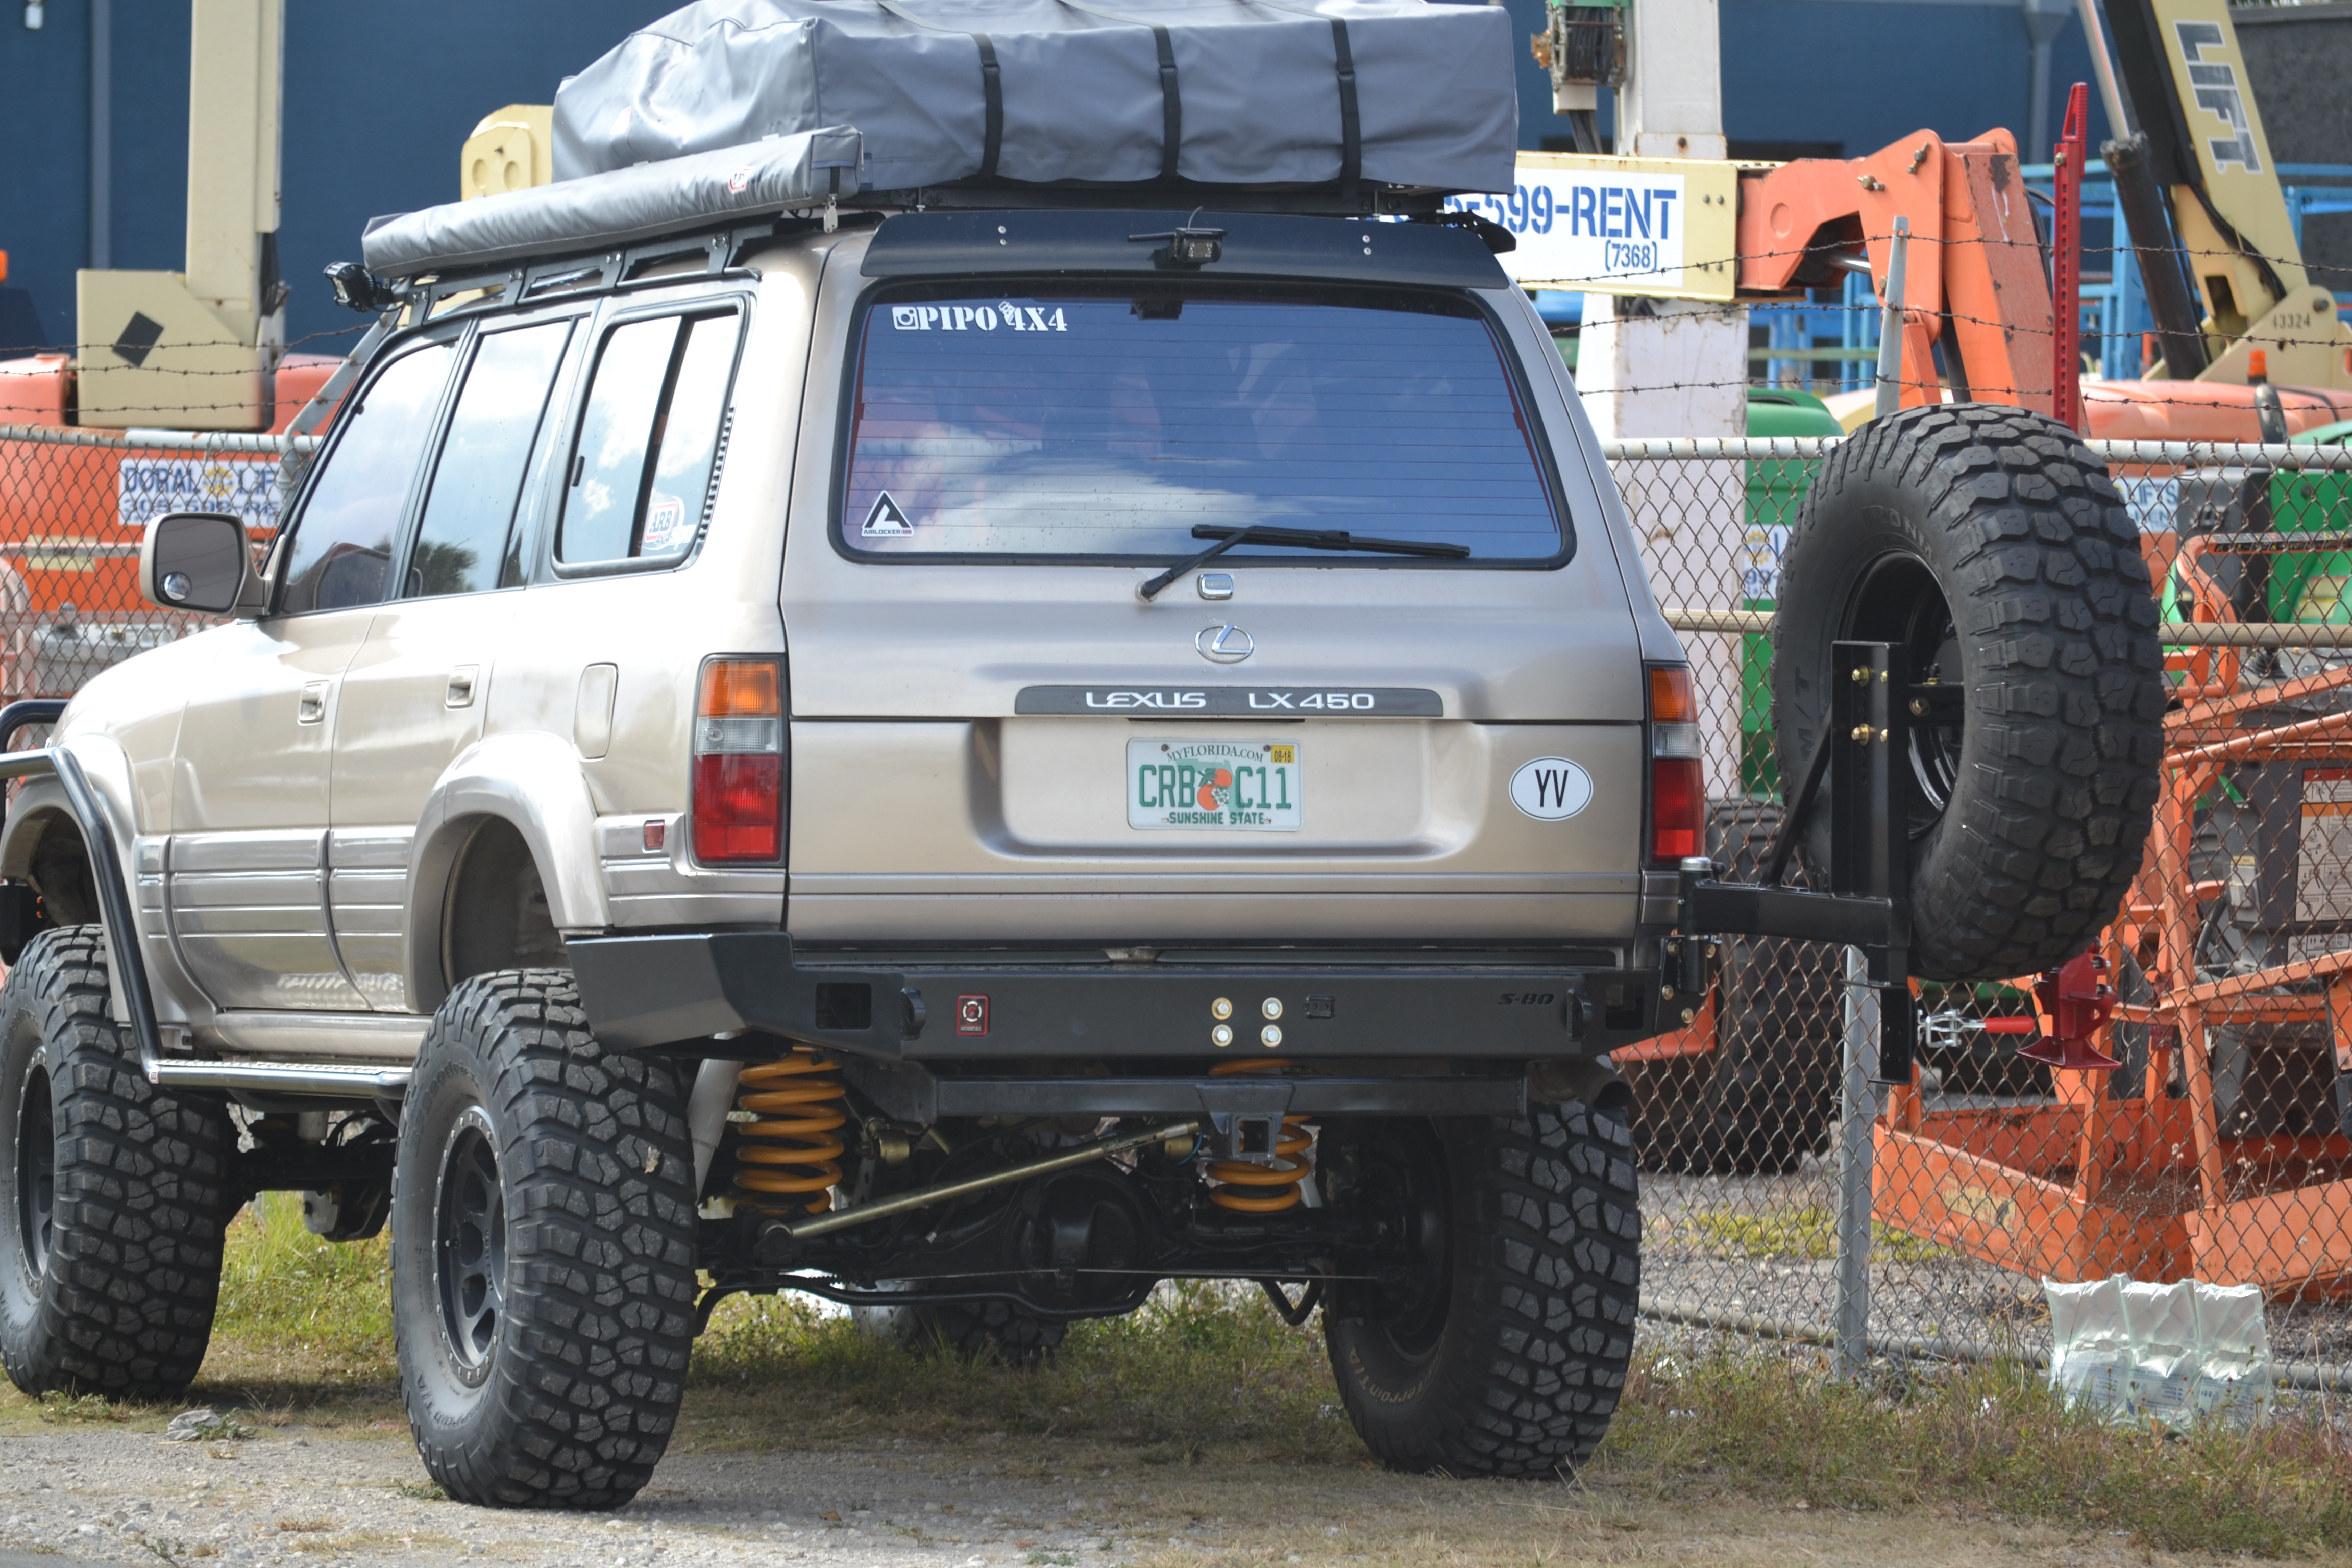 Land Cruiser J80 Rear Elite Bumper Proline 4wd Equipment